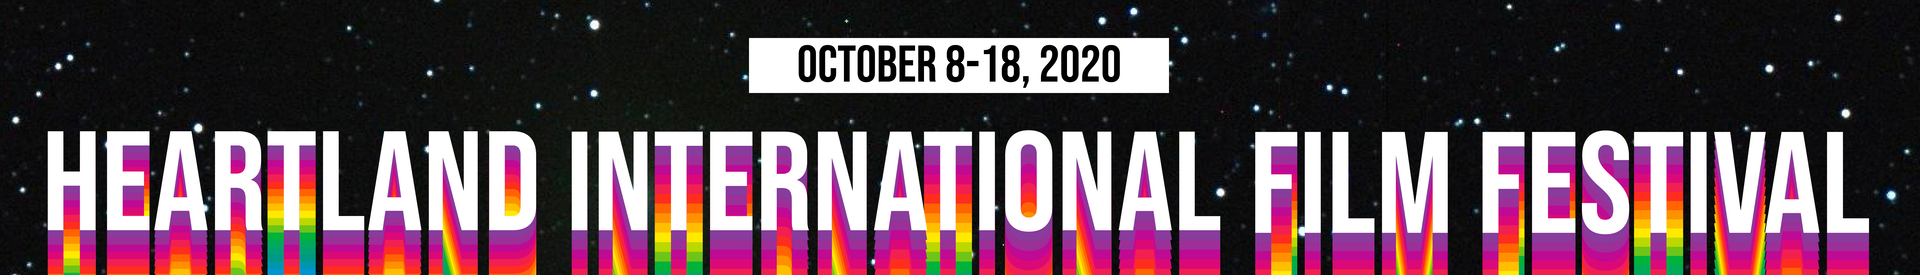 2020 Heartland International Film Festival